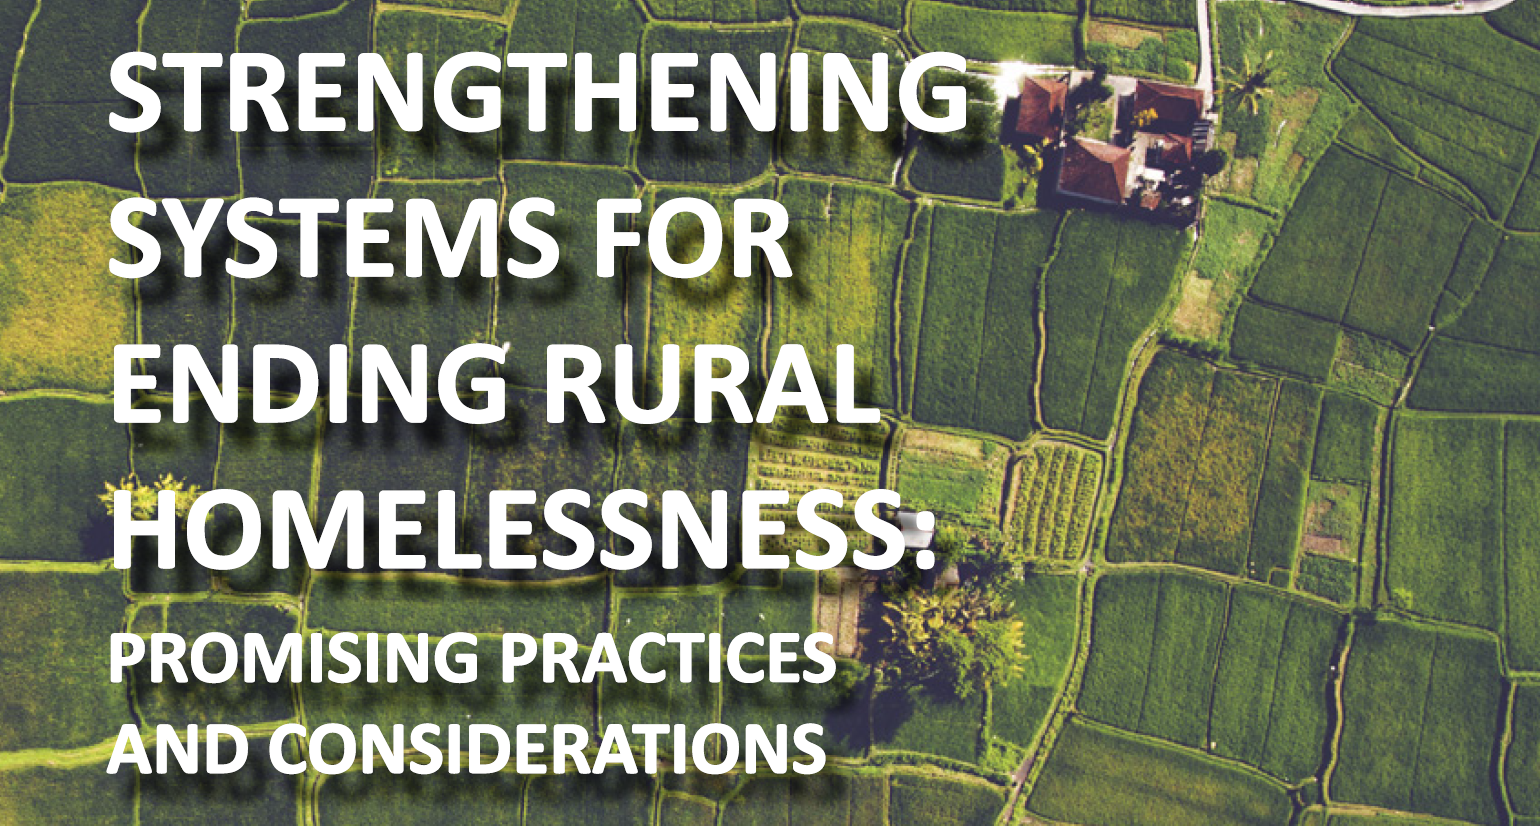 Strengthening Systems for Ending Rural Homelessness